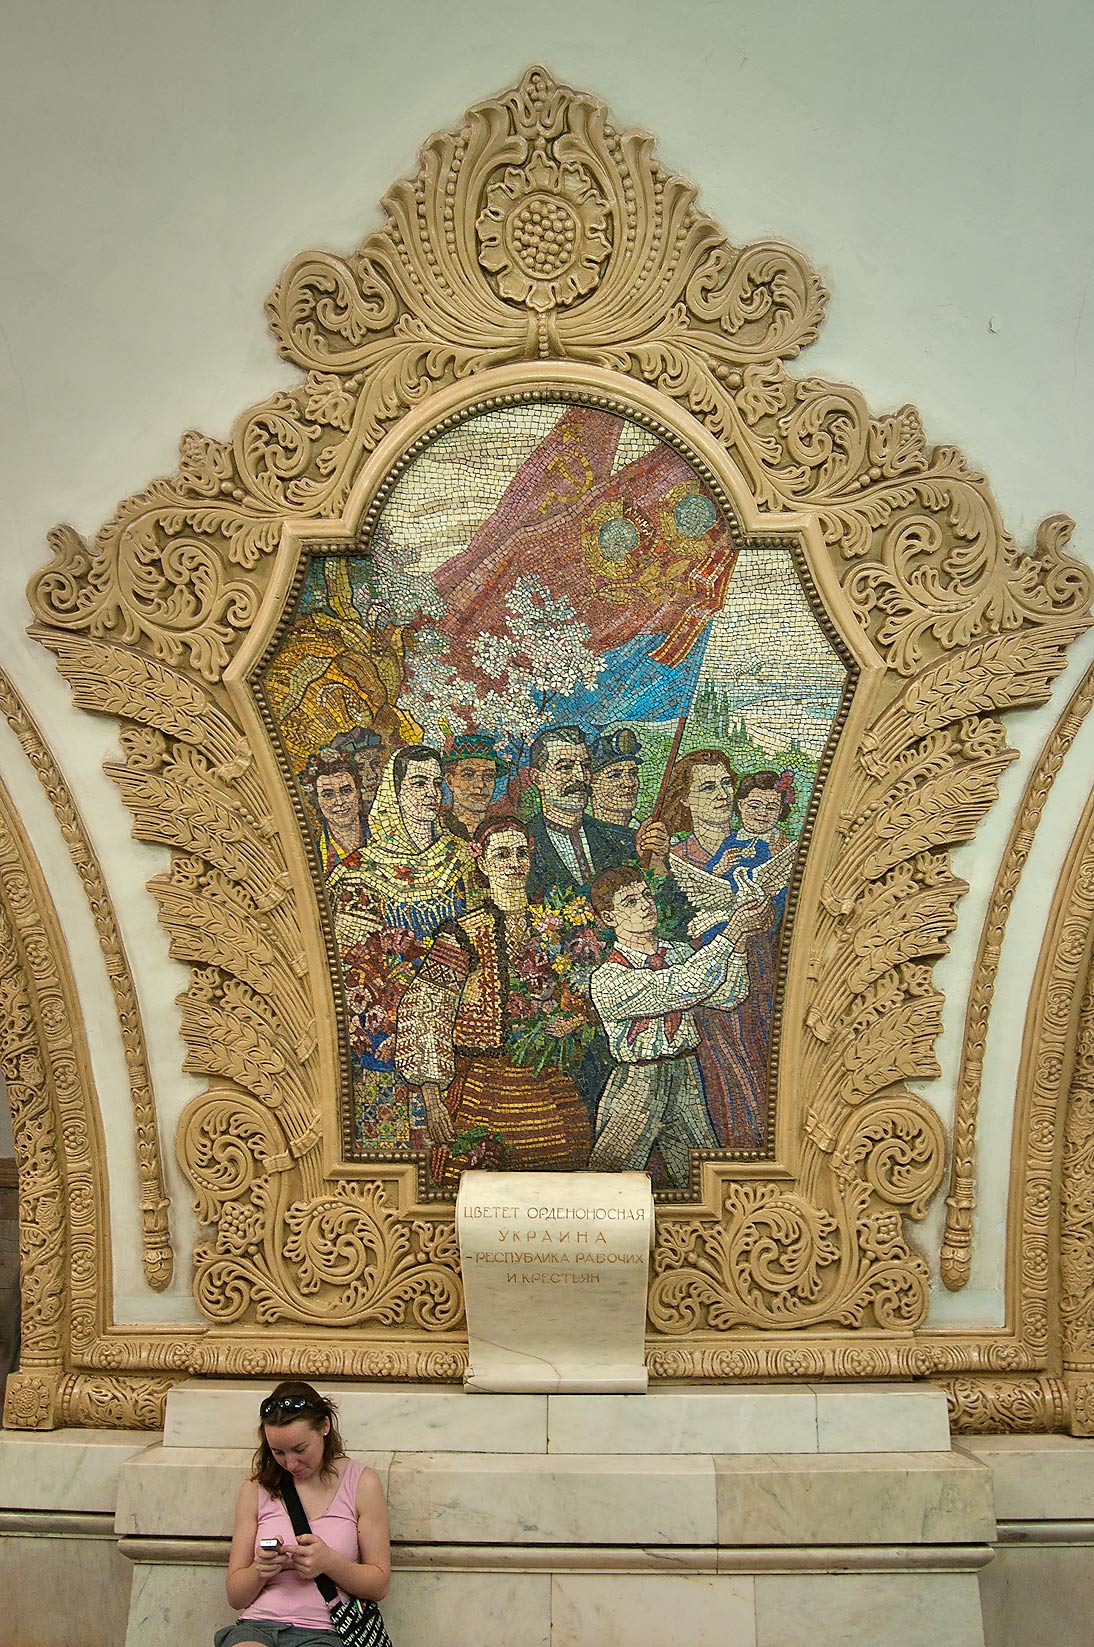 Stalin style mosaic in Metro Kievskaya subway station. Moscow, Russia